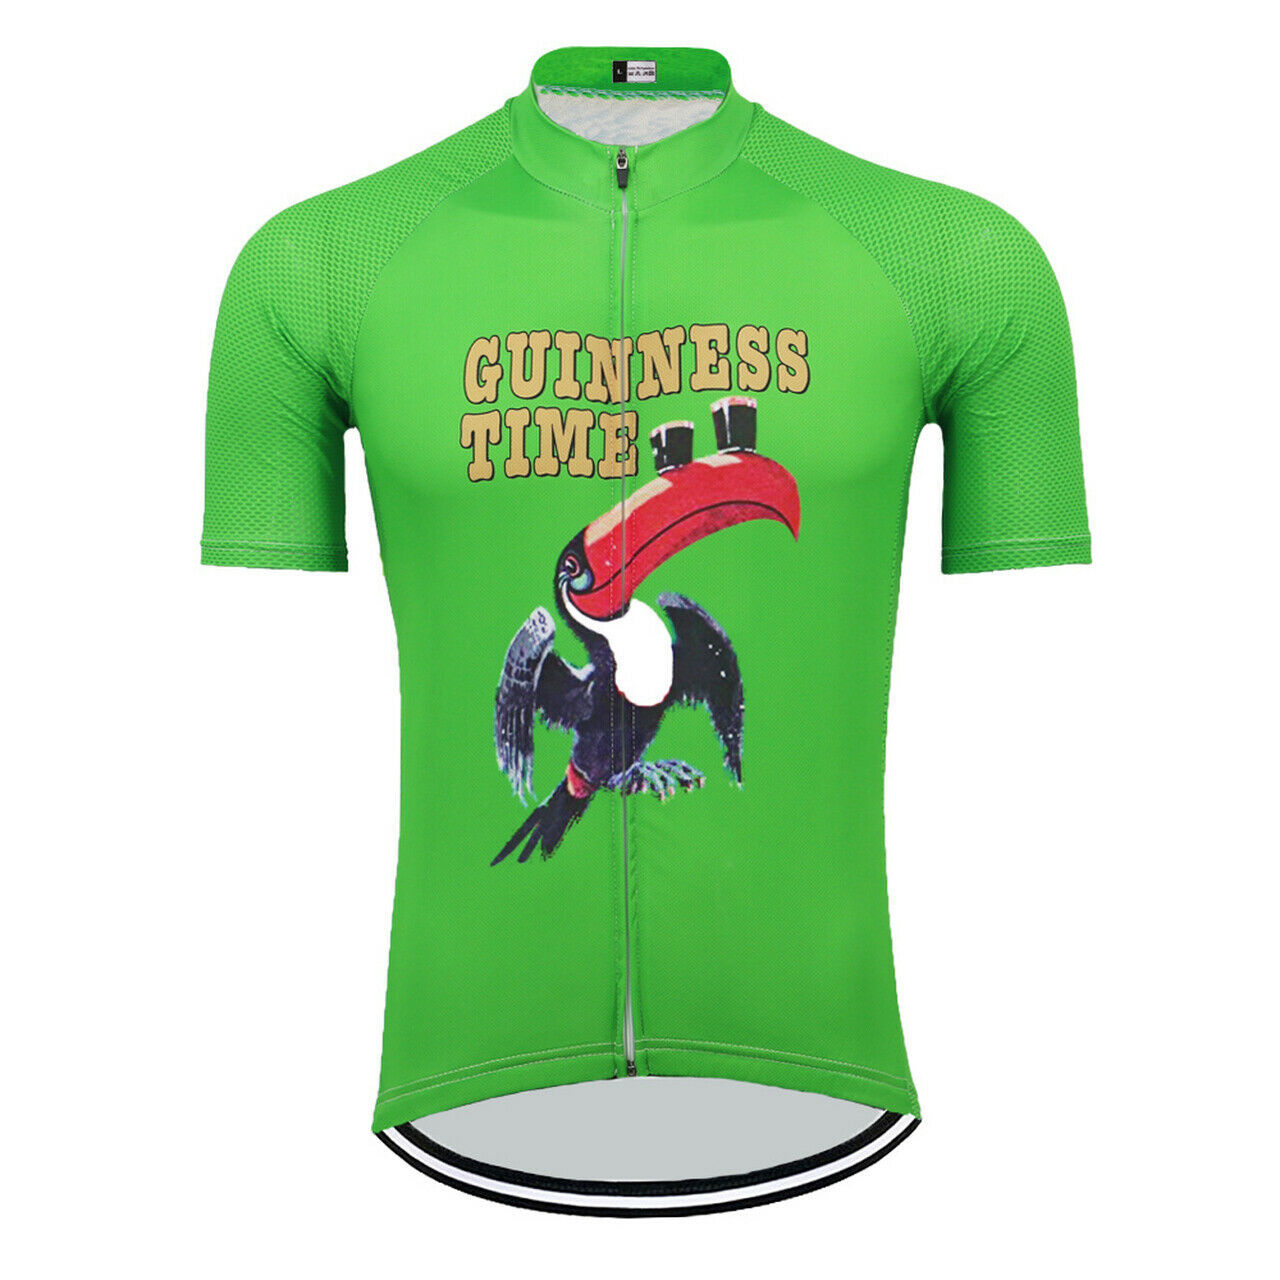 Ireland Guinness Time Beer Cycling Jersey Green - $29.00